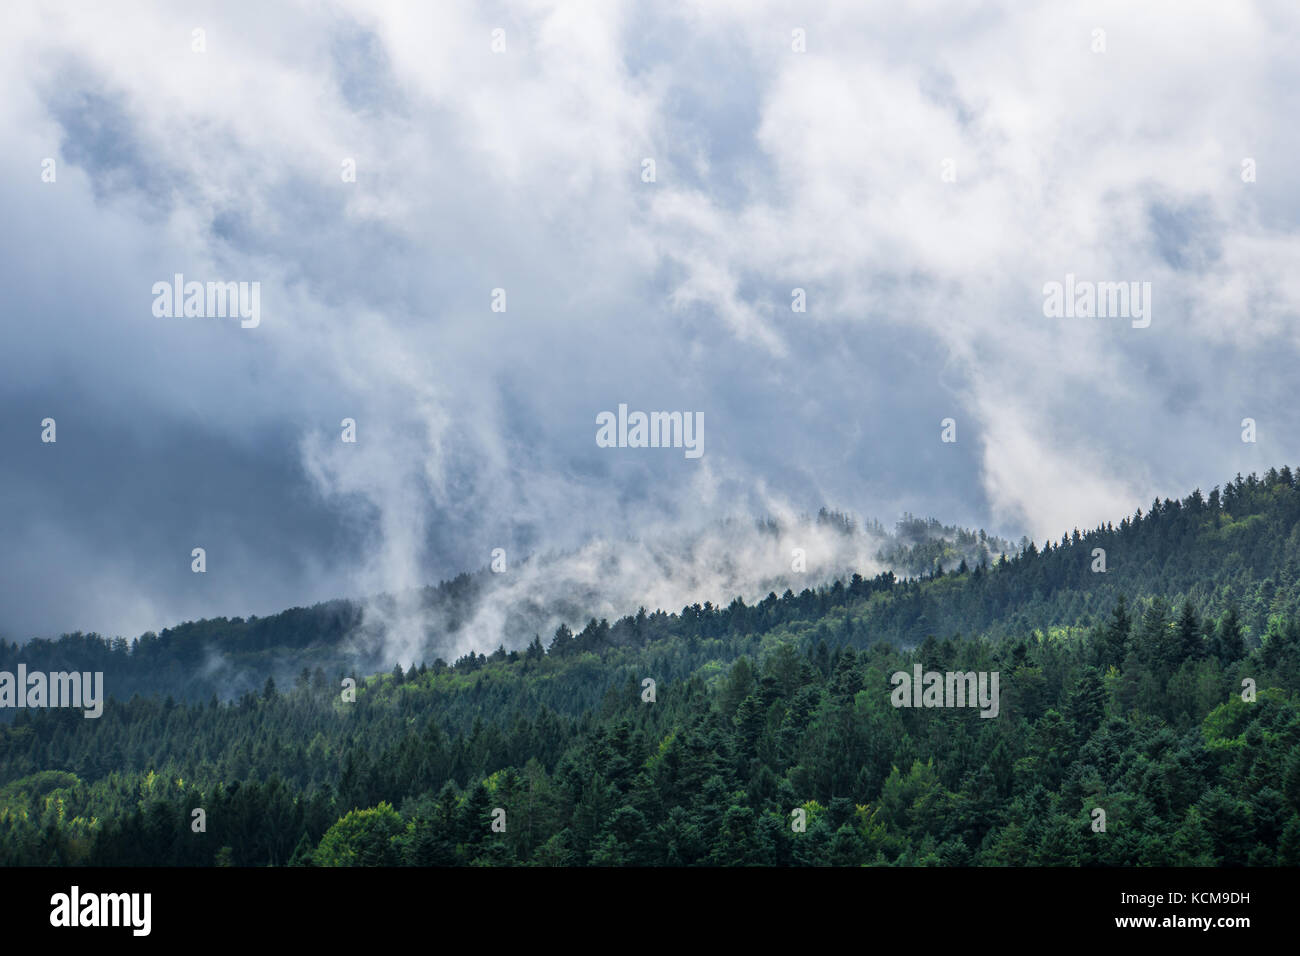 Germany, black forest, waft of mist moving above conifers in autumn morning hours - Stock Image